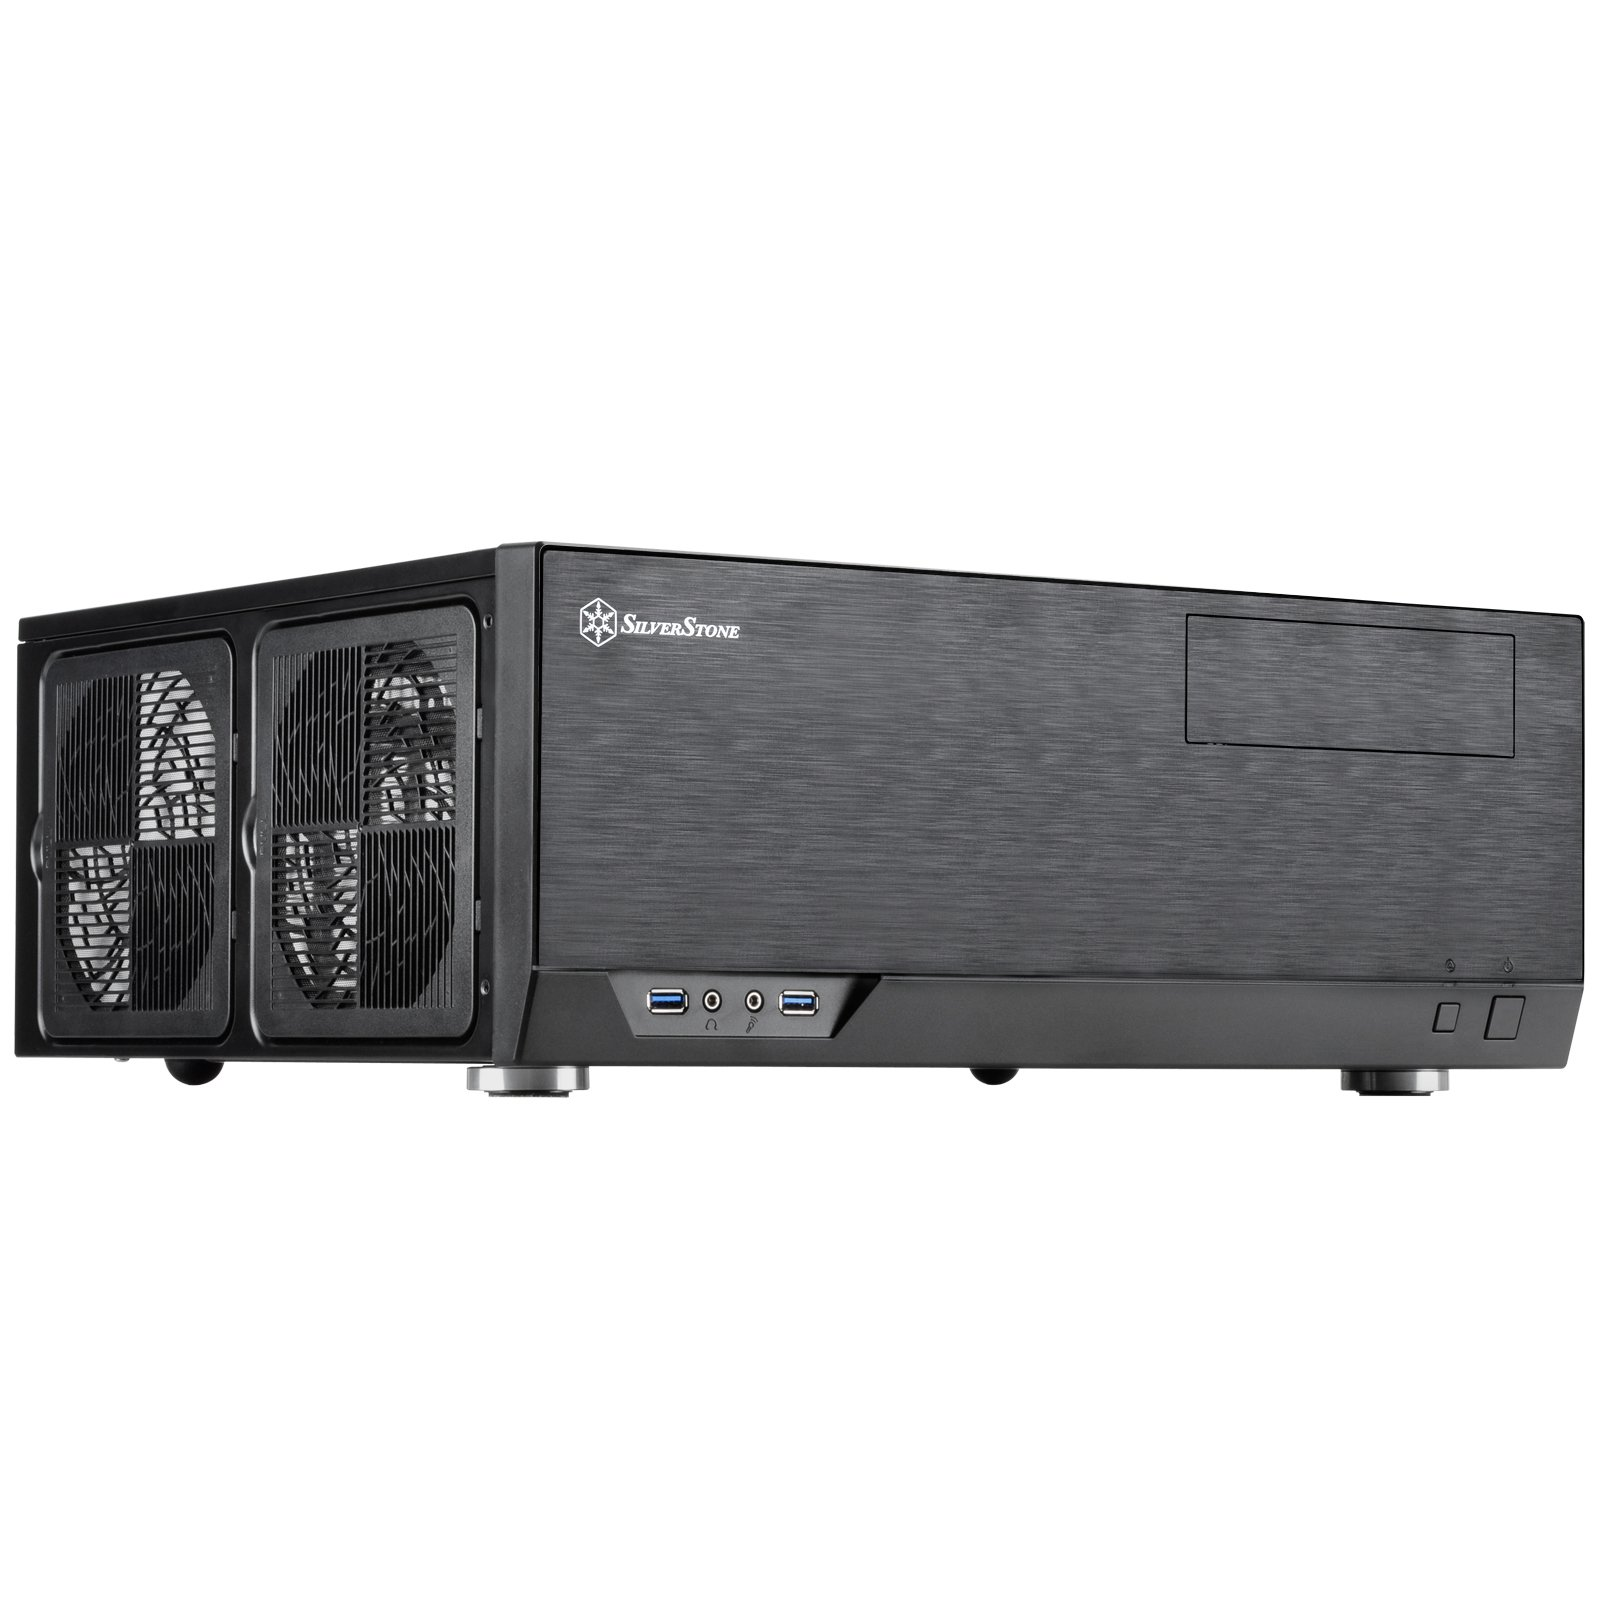 SilverStone Technology Home Theater Computer Case (HTPC) with Faux Aluminum Design for ATX/Micro-ATX Motherboards GD09B by SilverStone Technology (Image #2)